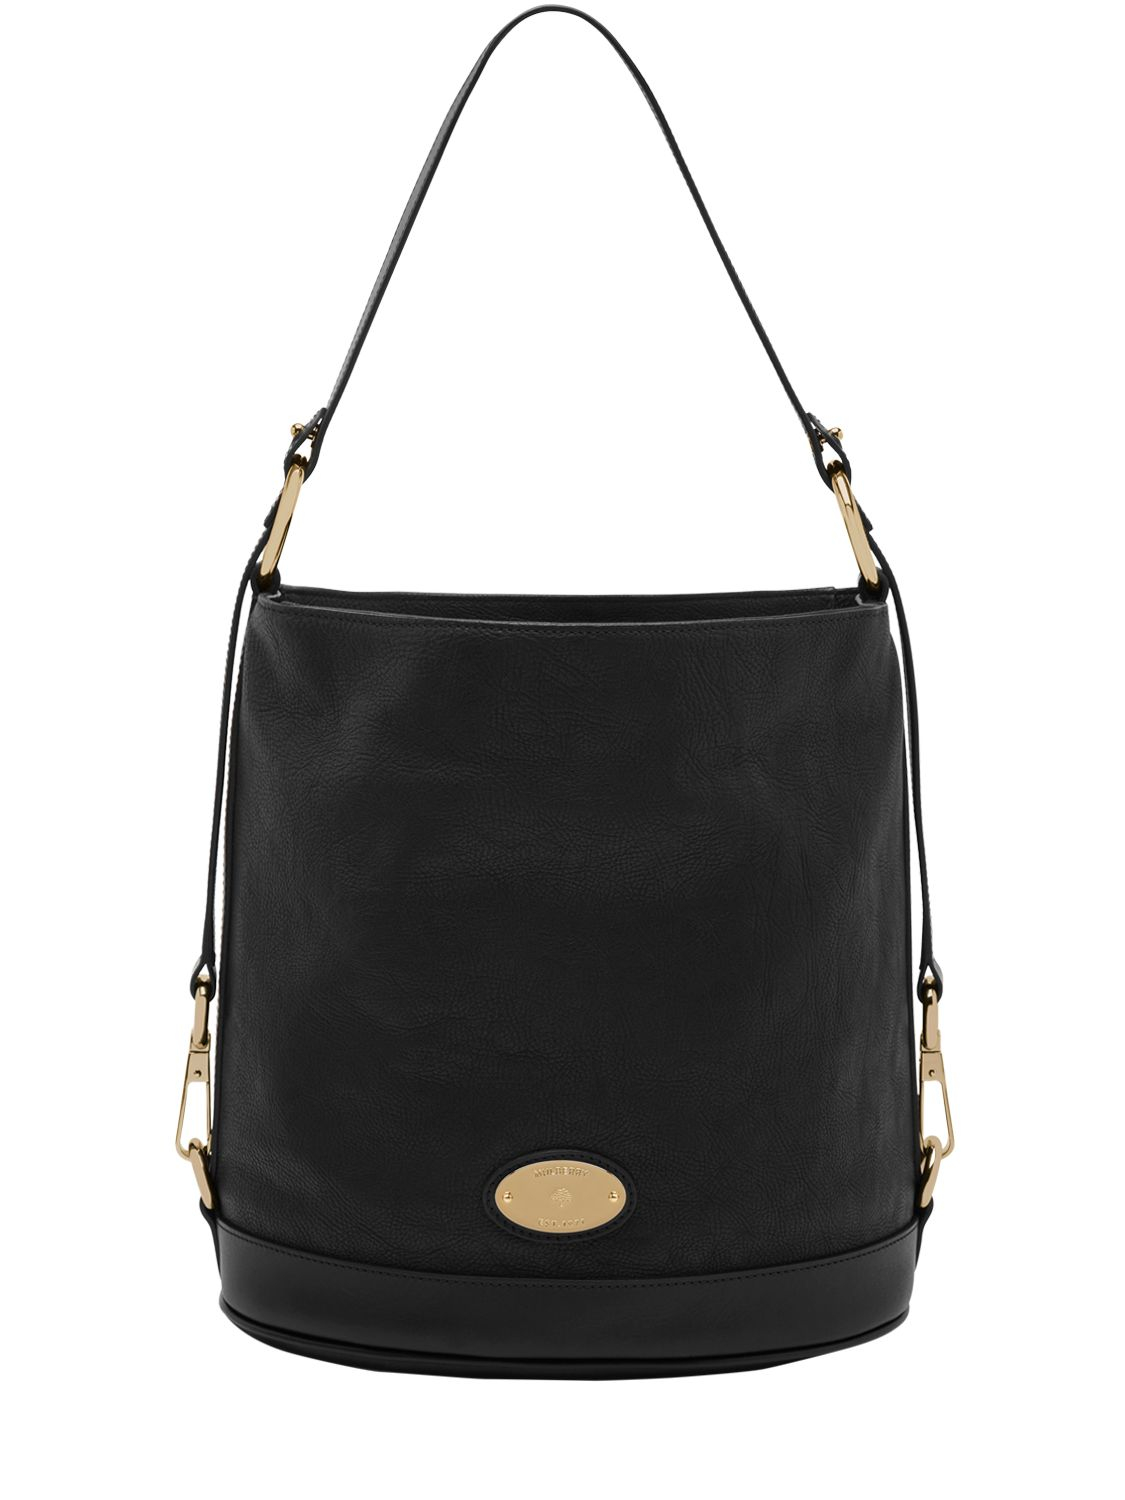 eb59094b59 Mulberry Jamie Washed Leather Bucket Bag in Black - Lyst